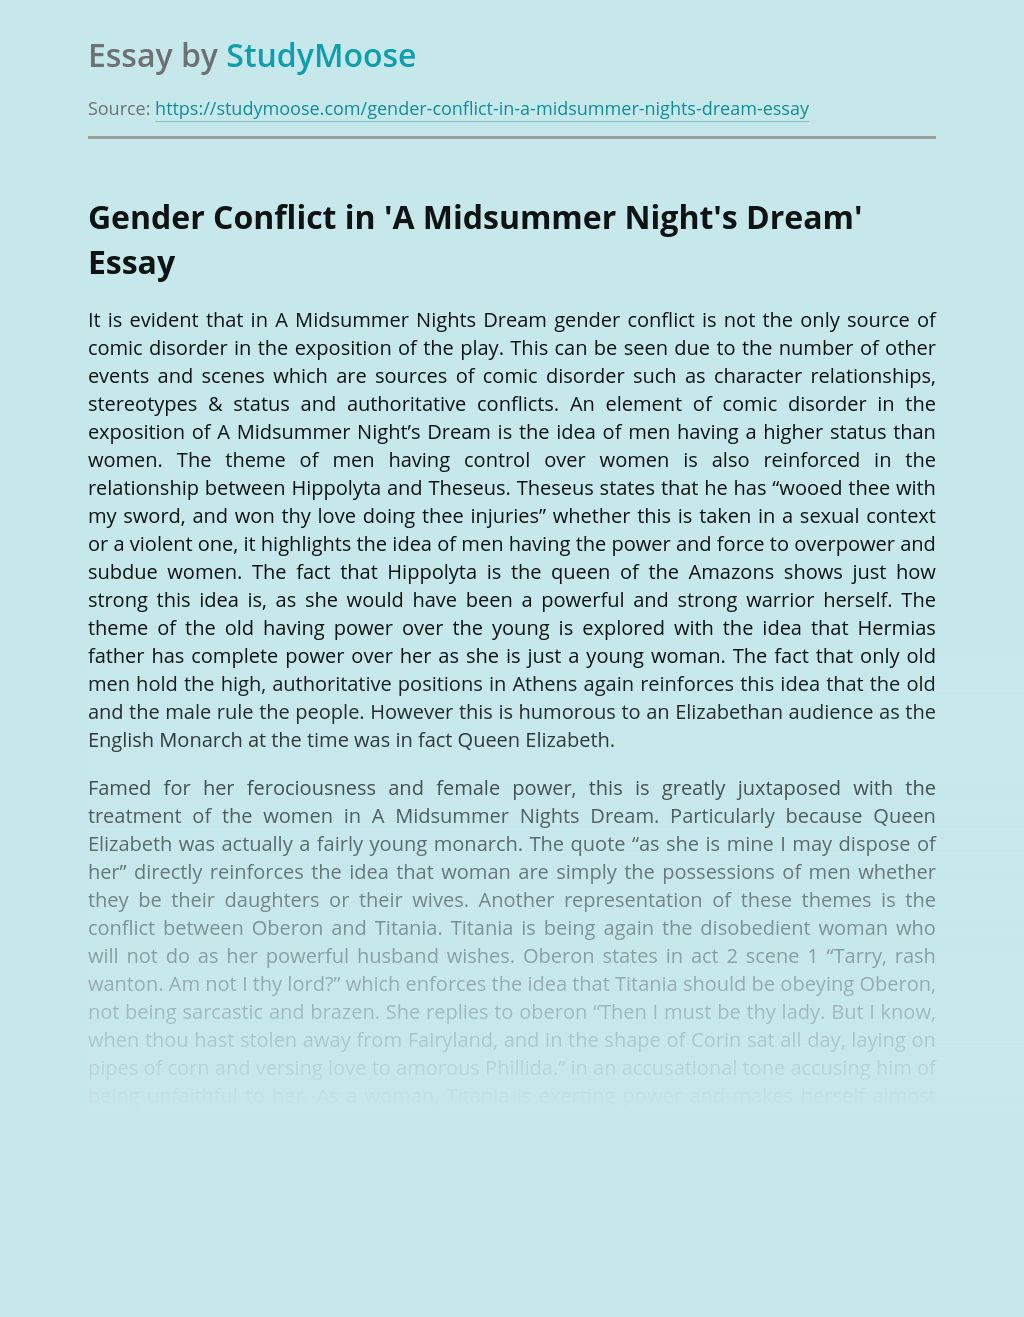 Gender Conflict in 'A Midsummer Night's Dream'